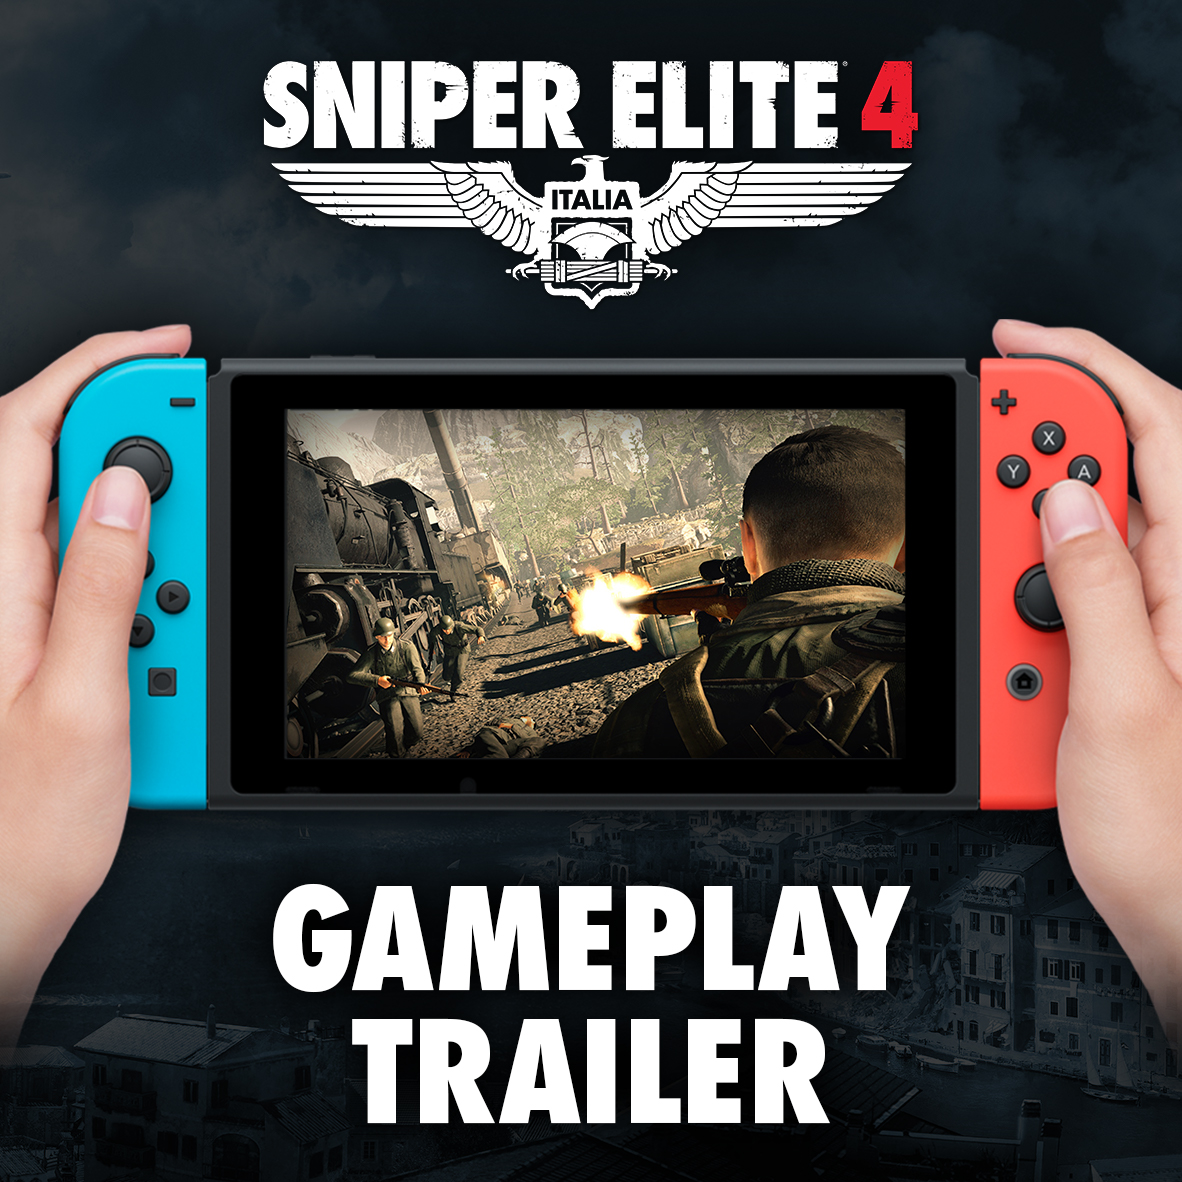 Sniper Elite 4 on Switch Gameplay Trailer